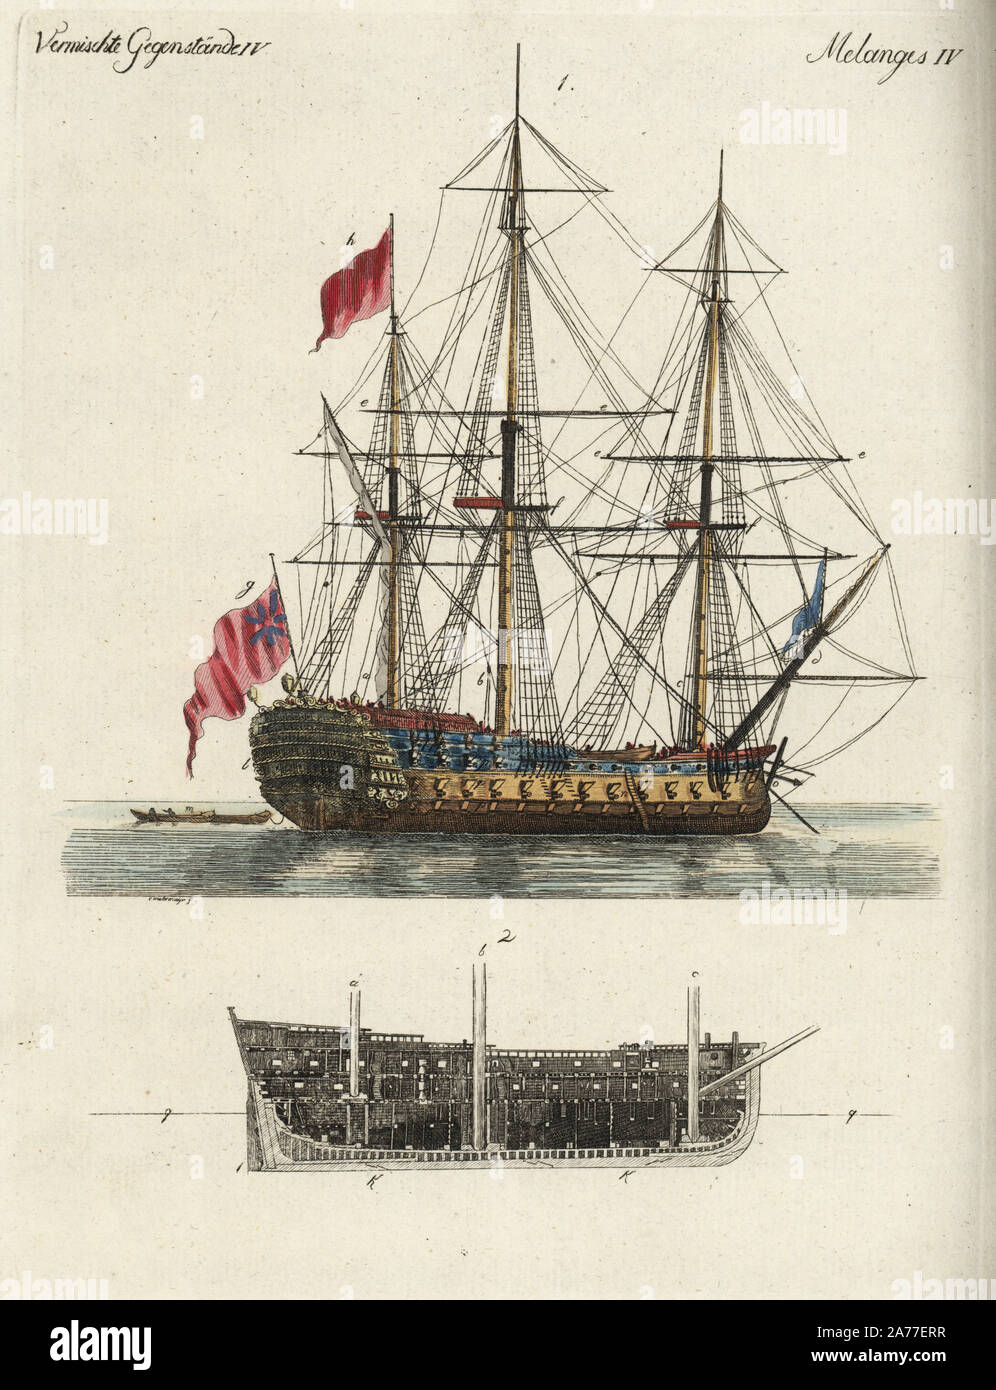 Ship of the line, with section through interior of the hull. Handcoloured copperplate engraving after Christiane Henriette Dorothea Westermayr from Friedrich Johann Bertuch's Bilderbuch fur Kinder (Picture Book for Children), Weimar, 1792. Stock Photo